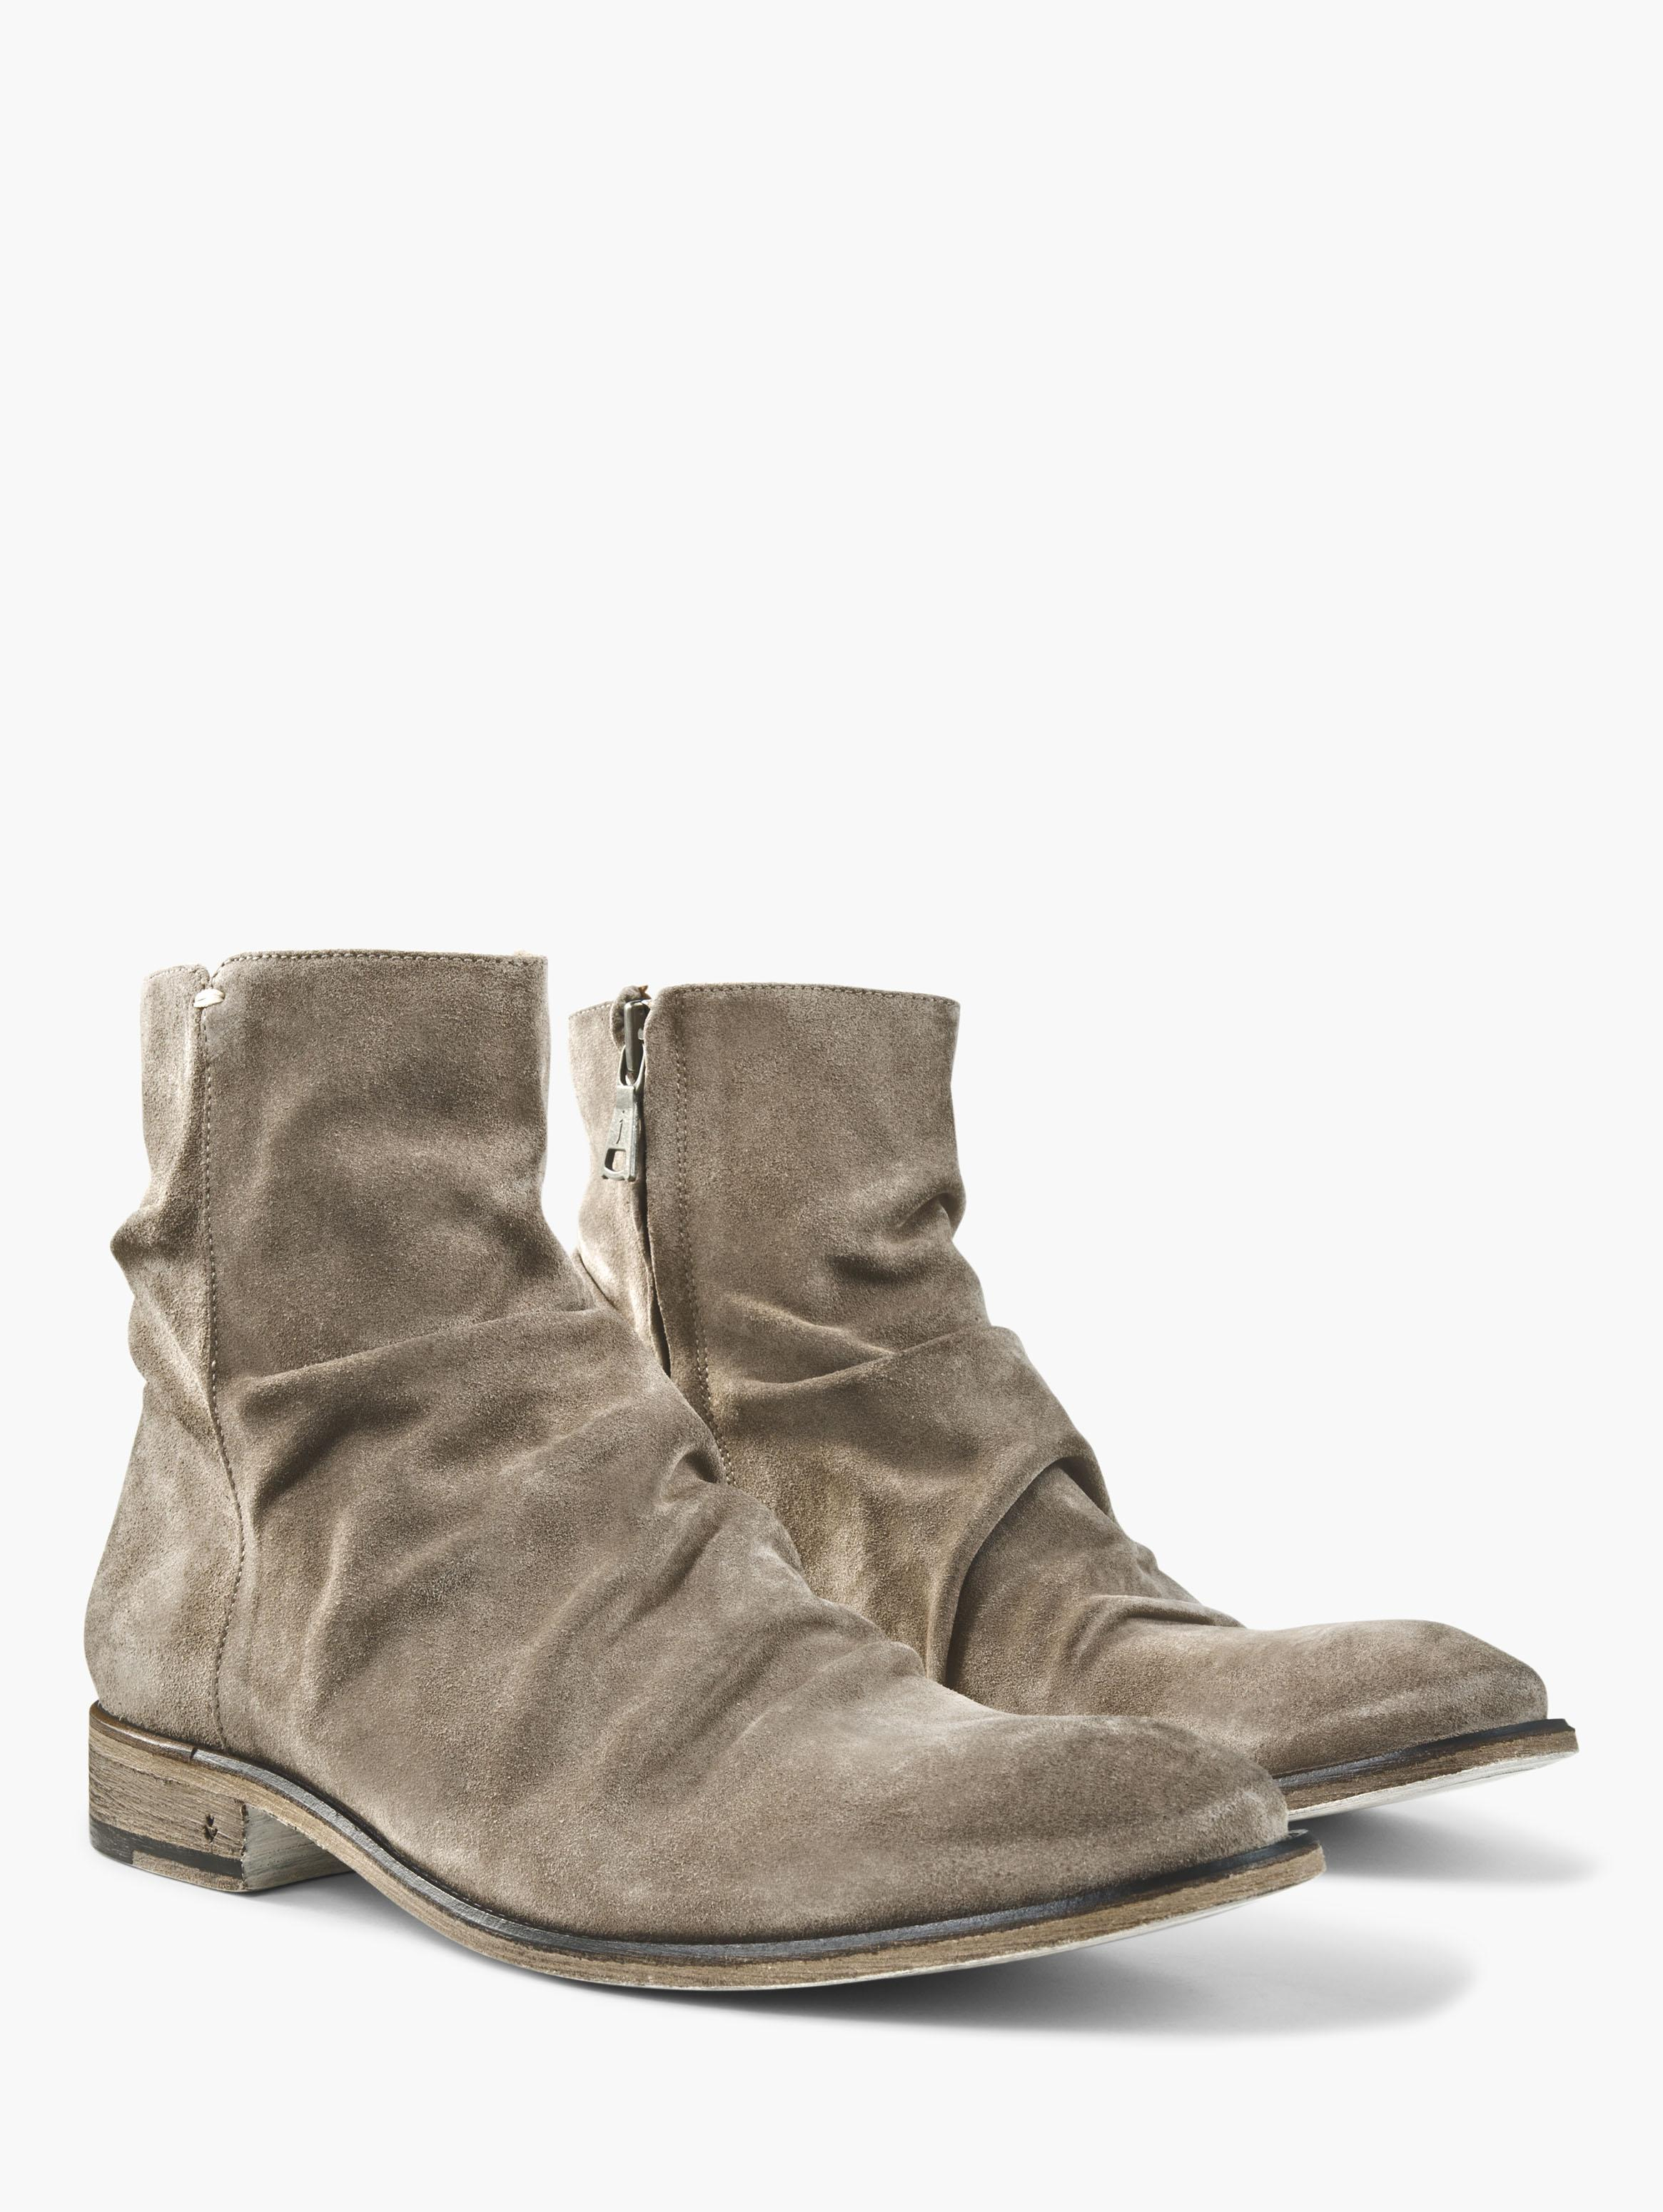 Suede Morrison Sharpei Boot